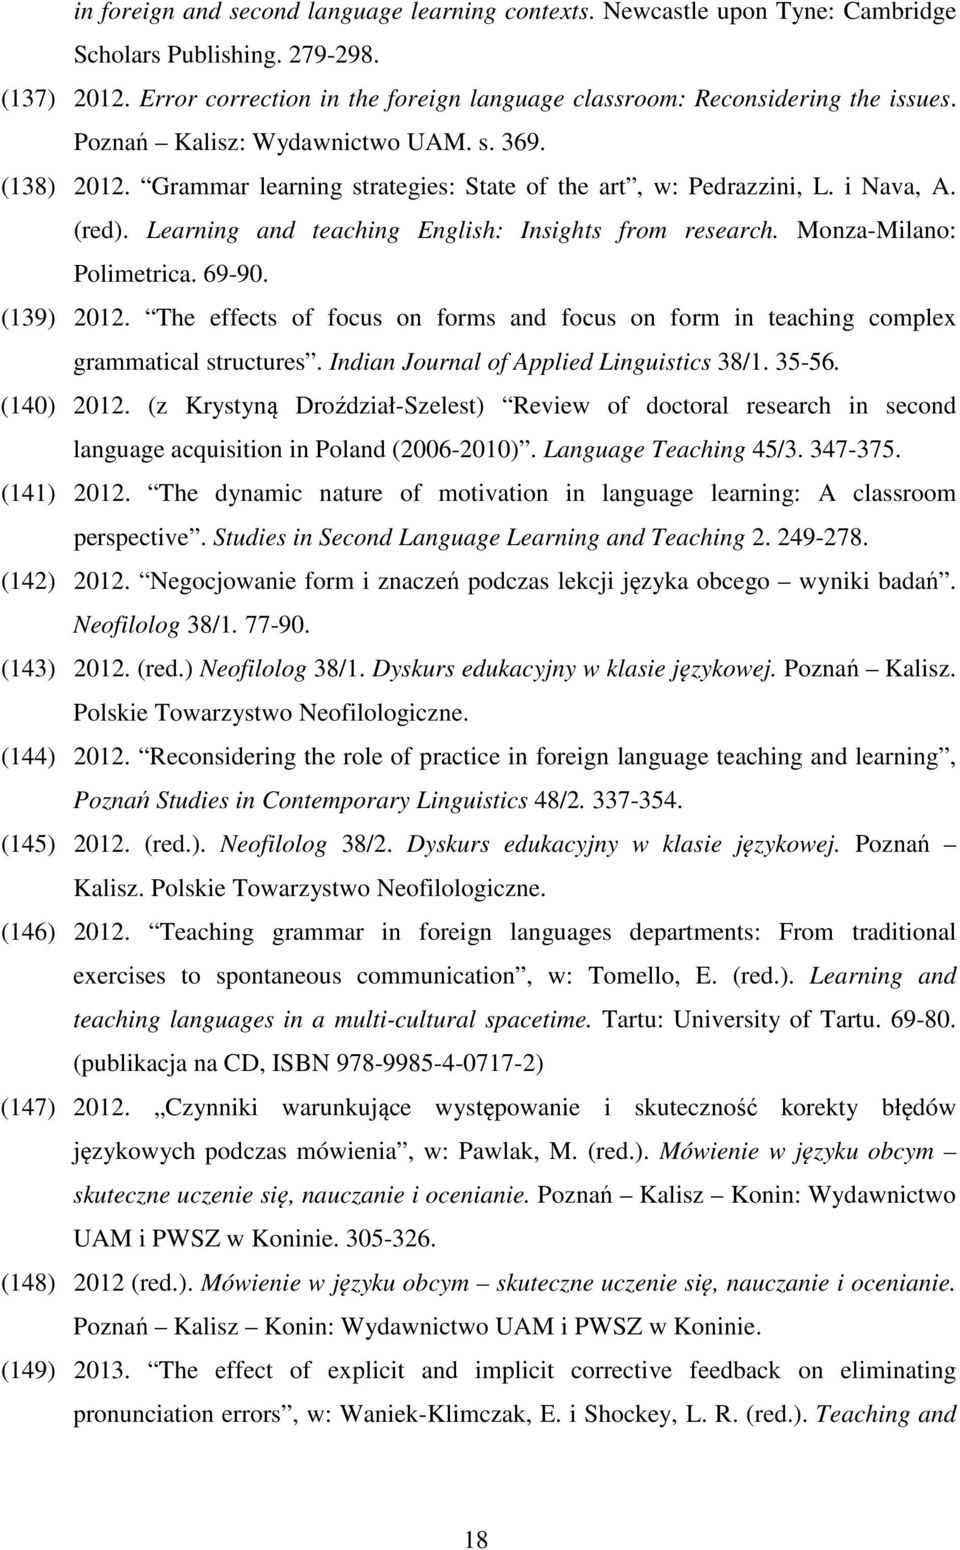 Monza-Milano: Polimetrica. 69-90. (139) 2012. The effects of focus on forms and focus on form in teaching complex grammatical structures. Indian Journal of Applied Linguistics 38/1. 35-56. (140) 2012.